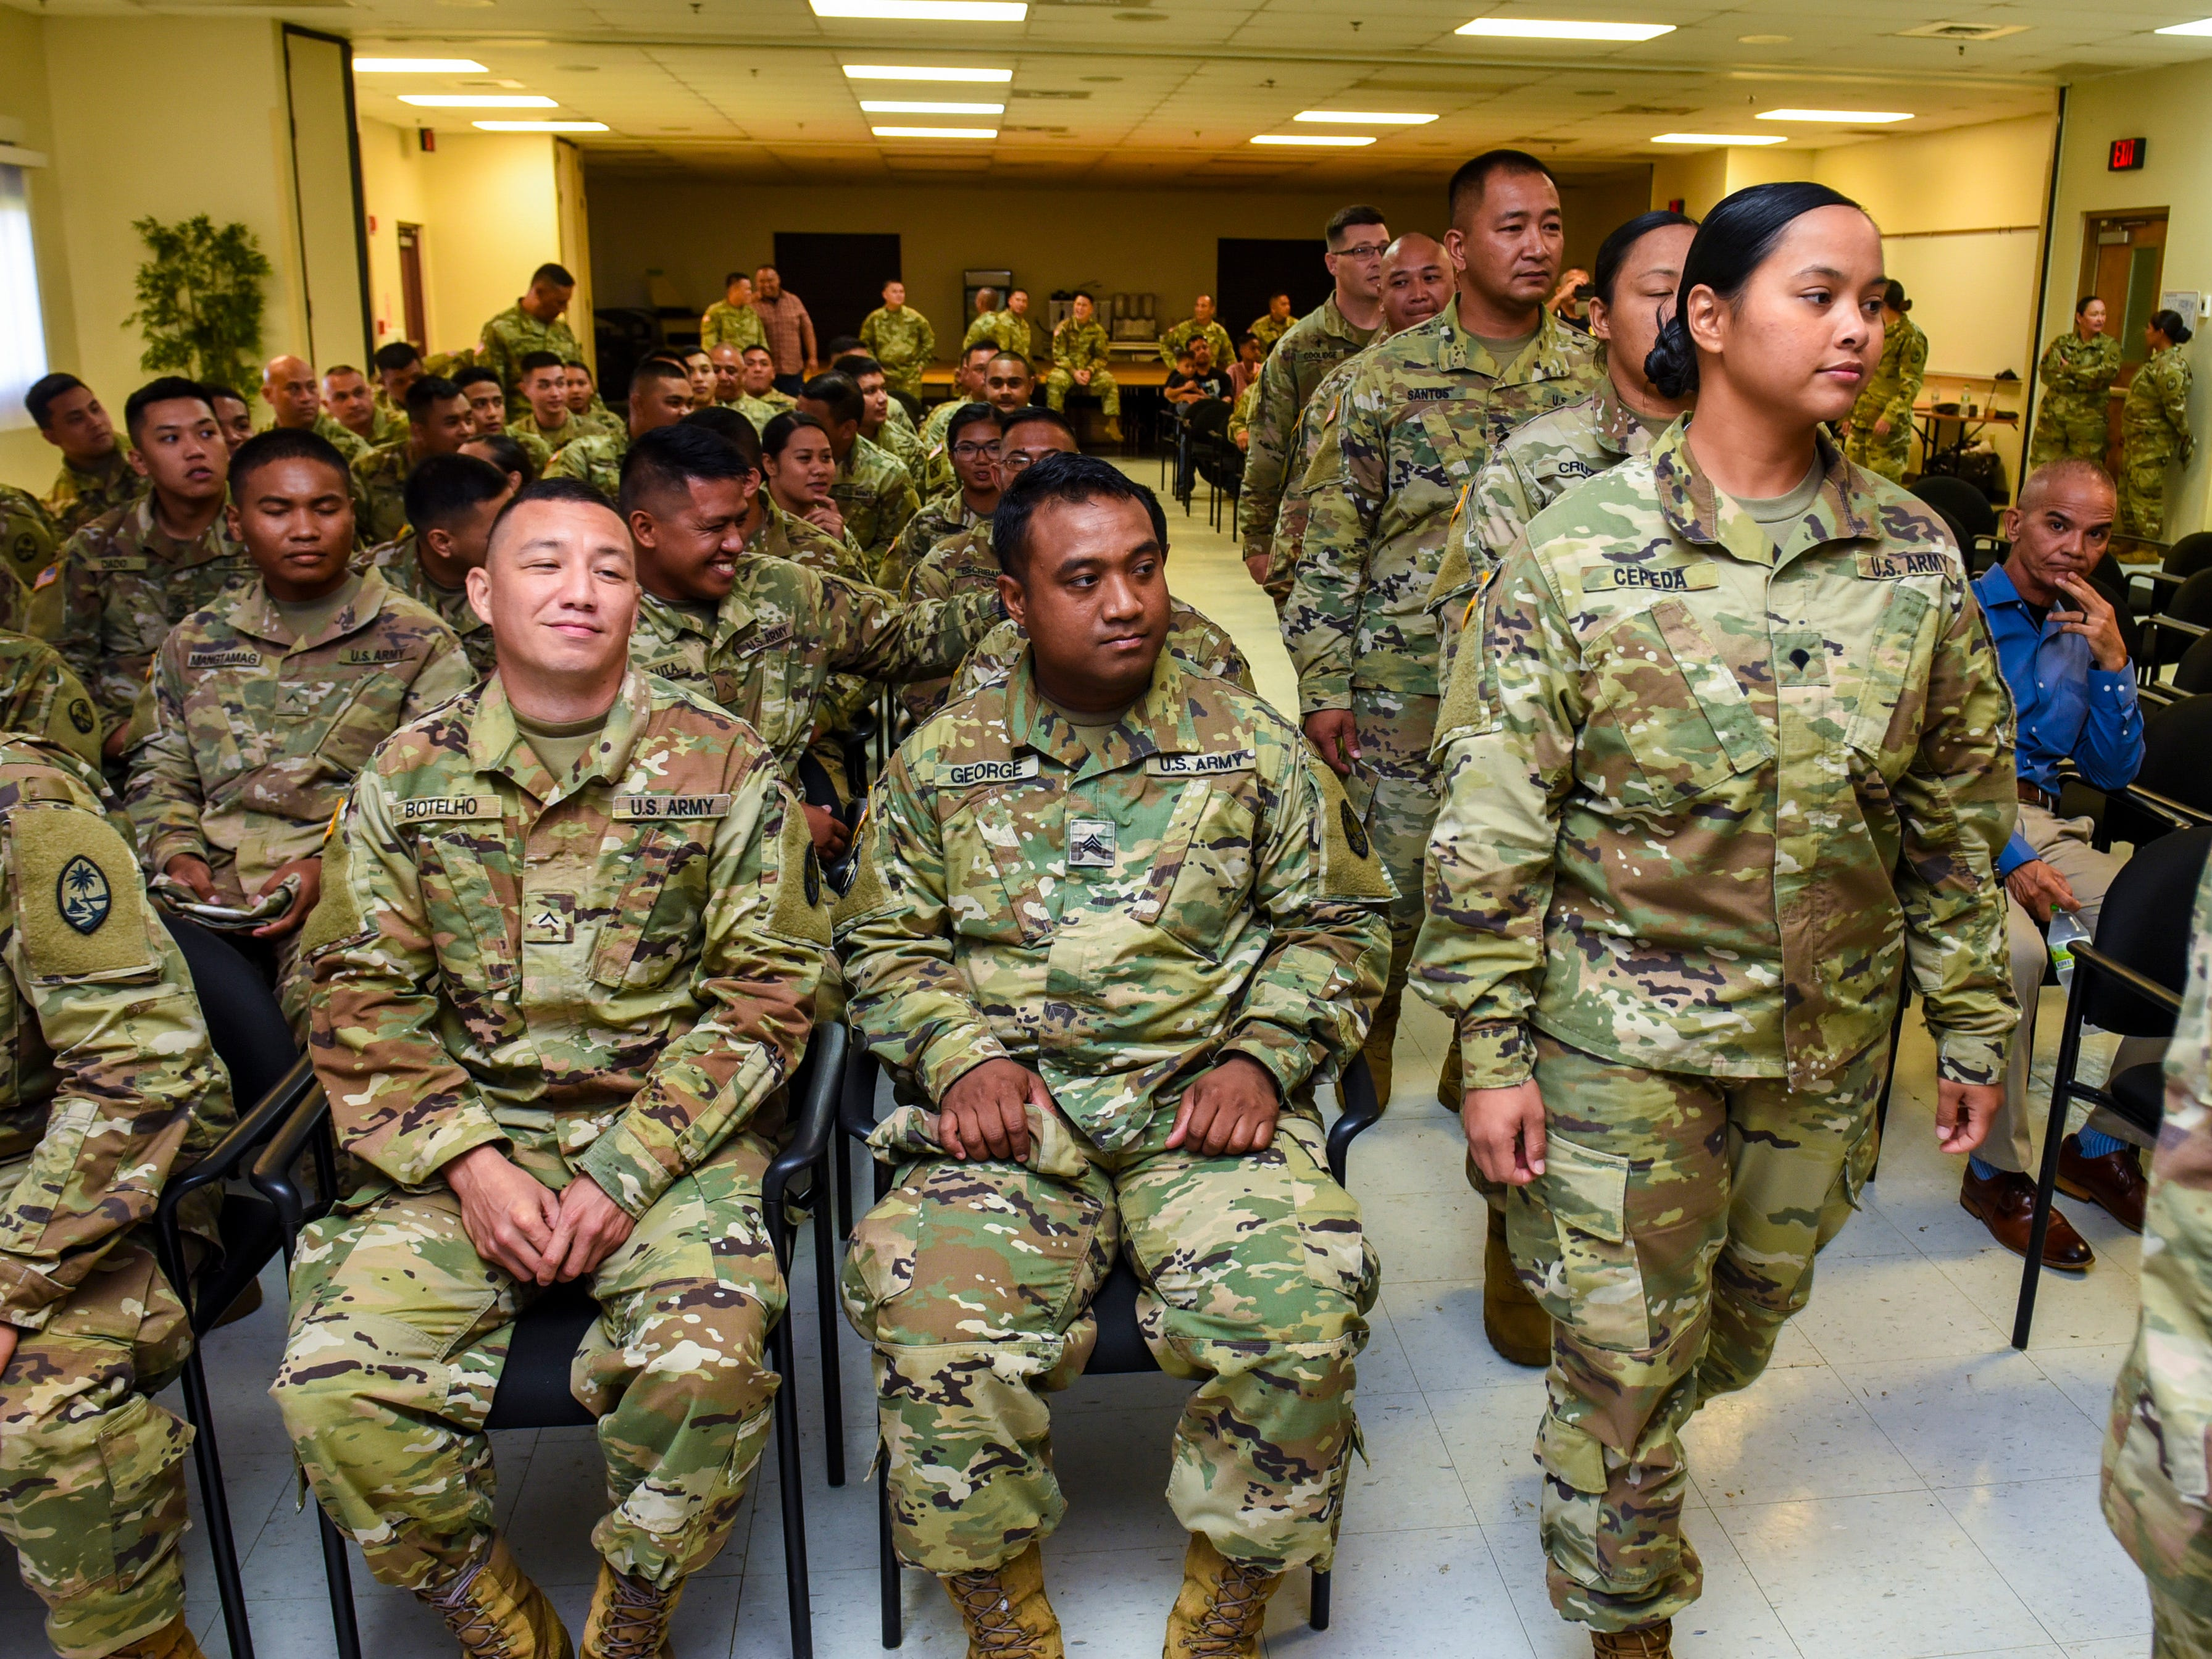 Guam Army National Guard soldiers are recognized during a sendoff ceremony at the Guard's Readiness Center in Barrigada on Wednesday, Oct. 31, 2018. The soldiers are slated to be deployed, to aid in the recovery efforts on the island of Saipan, in the wake of the destruction abd aftermath left by the onslaught of Super Typhoon Yutu.